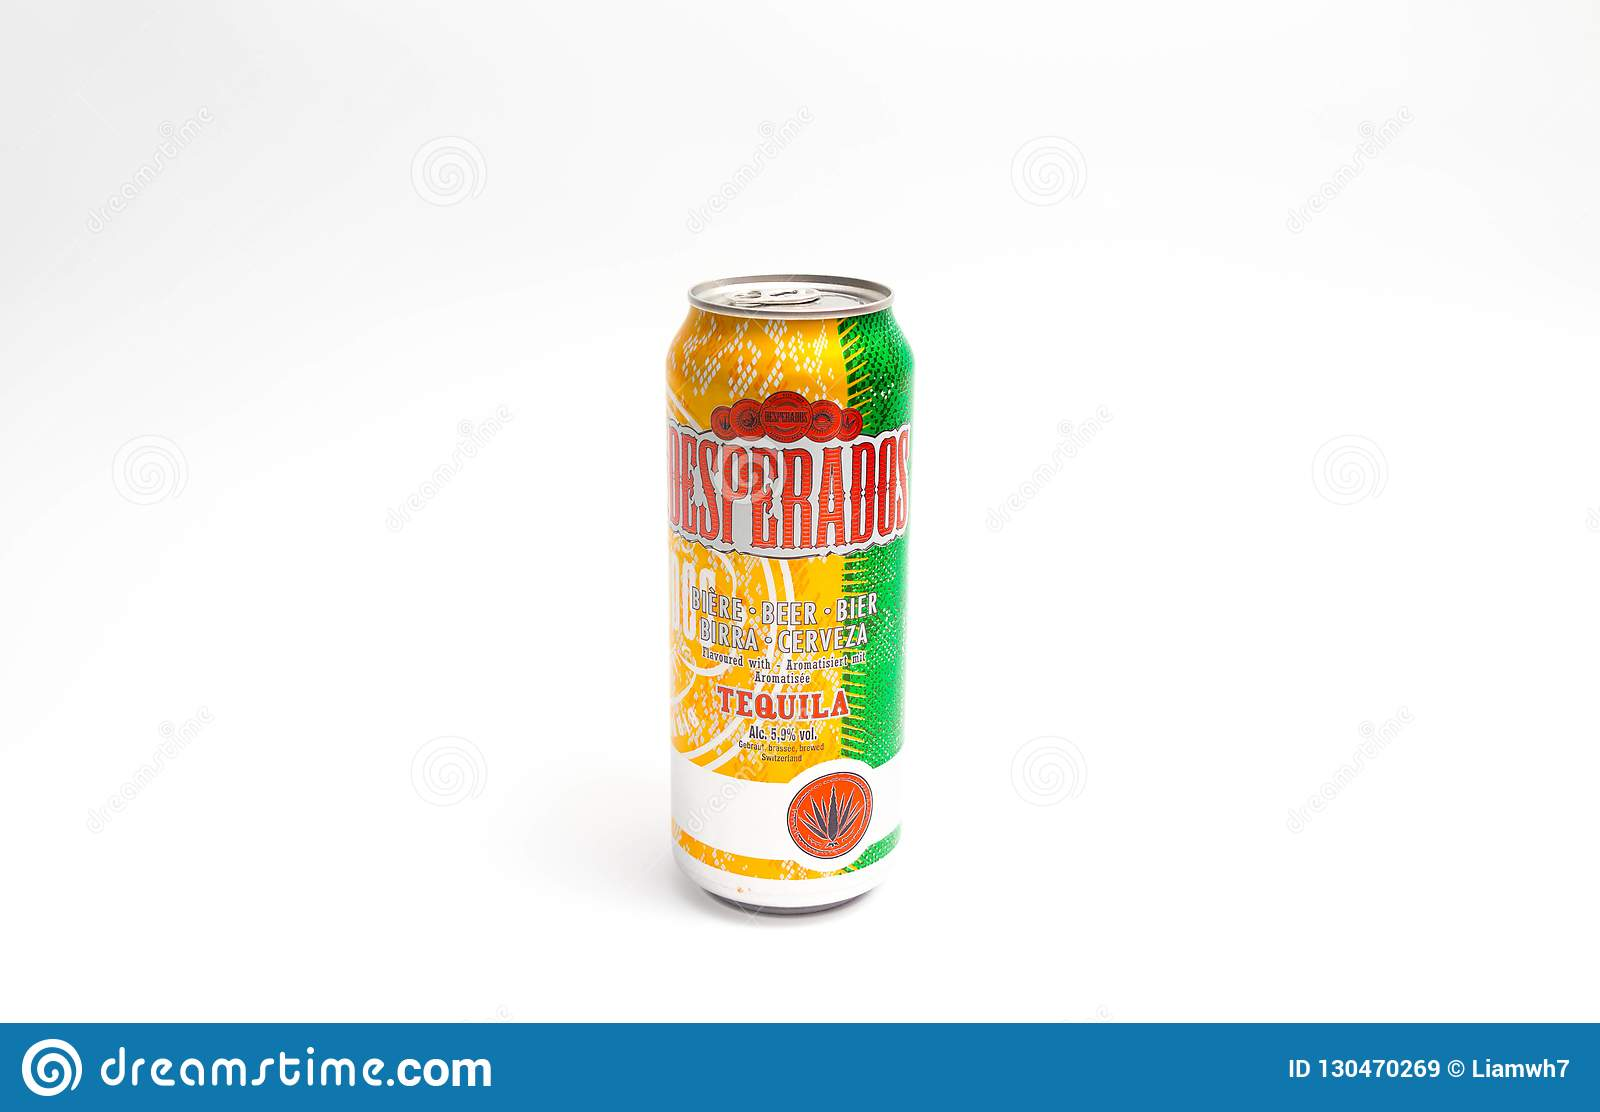 Geneva Switzerland 09 09 18 Desperados Flavored Beer Tequila Can Cerveza Editorial Stock Image Image Of Beer Cider 130470269